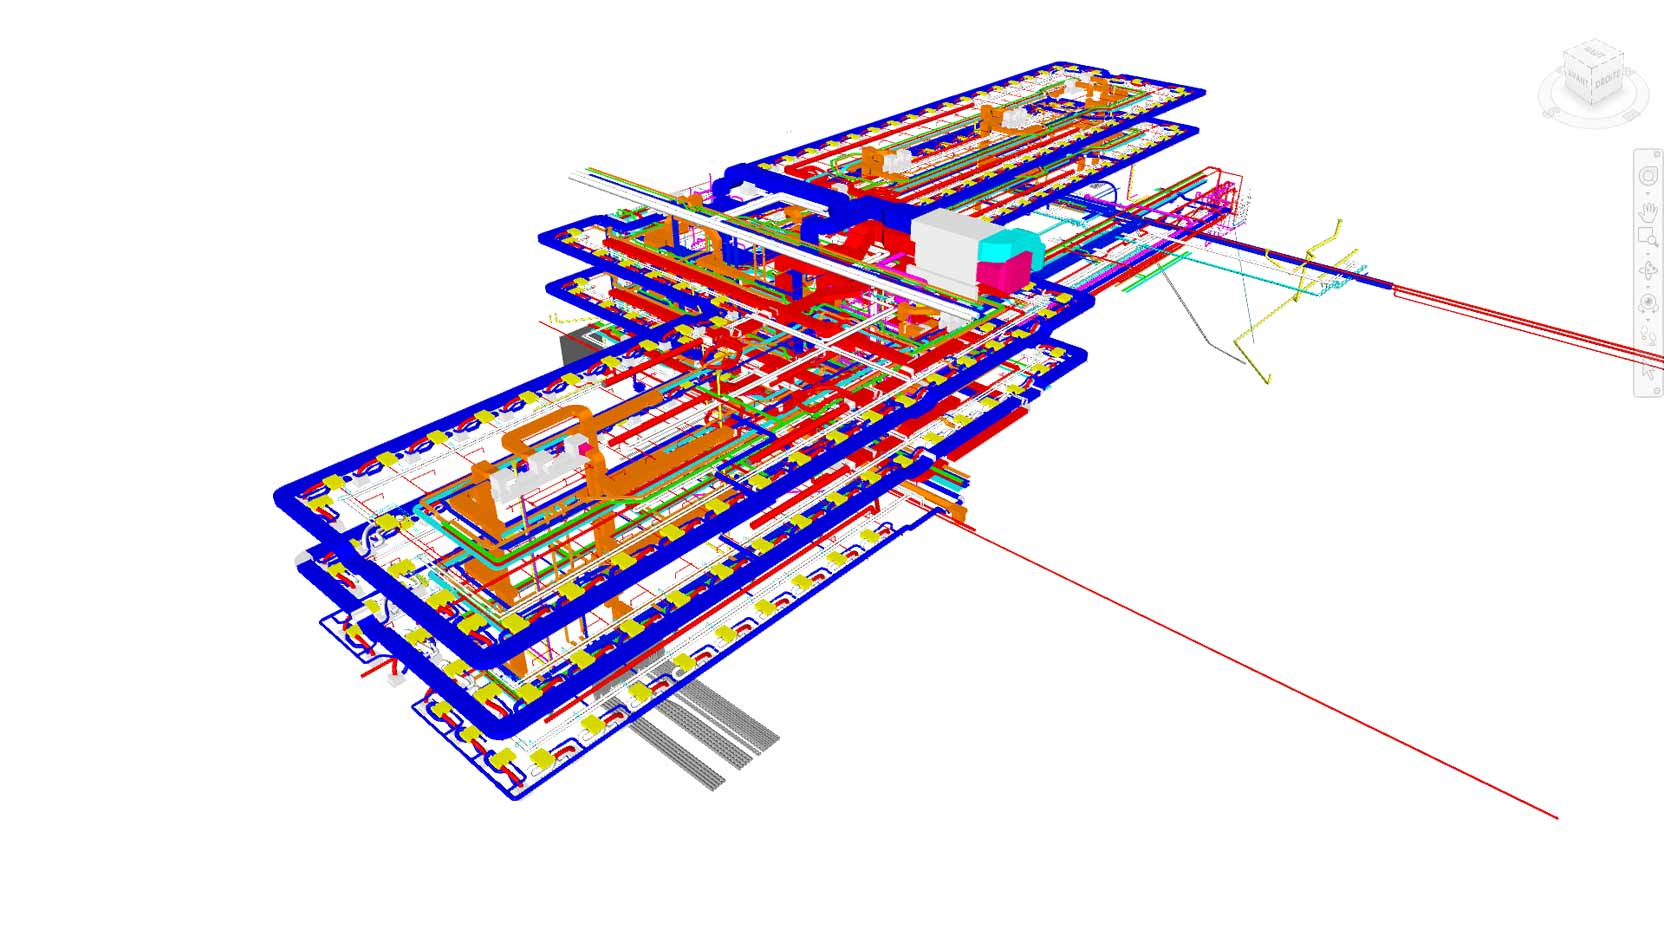 GA integrates the Onfly.io solution to improve the BIM modelling of its projects and further speed up construction